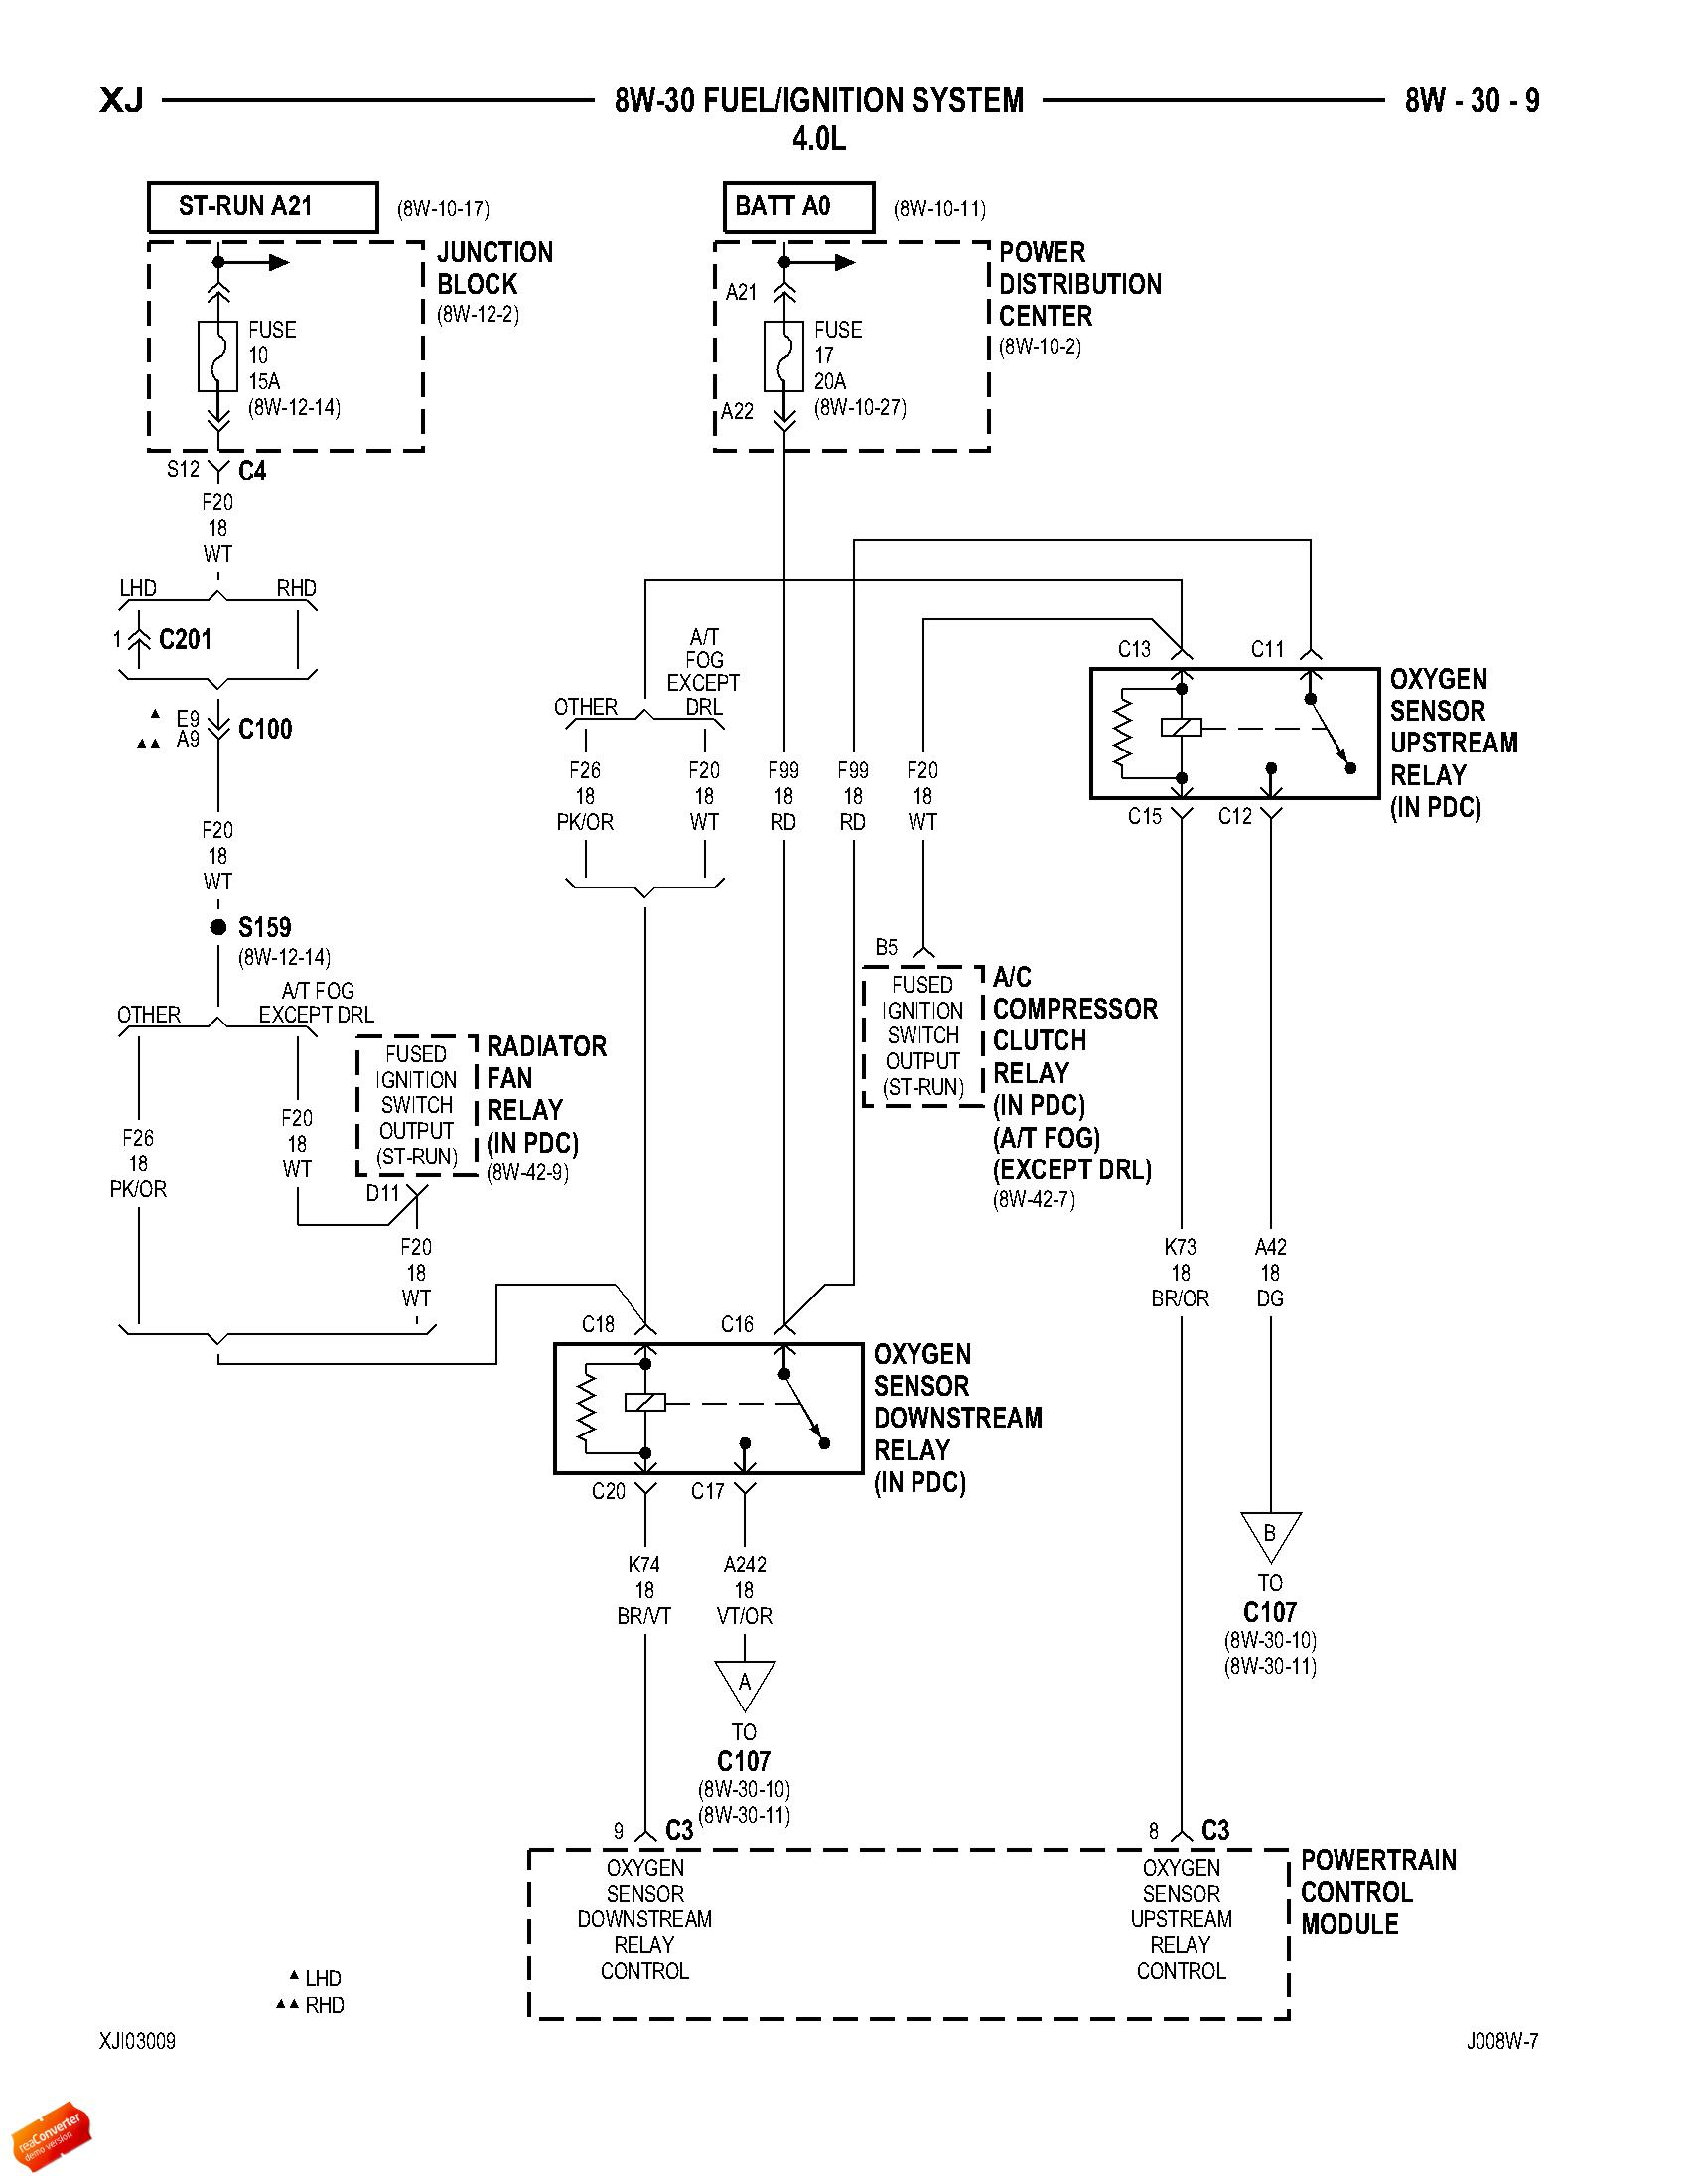 hight resolution of wiring diagram furthermore wiring harness diagram likewise diagrams vacuum diagram likewise 2008 honda civic fuse diagram furthermore ford